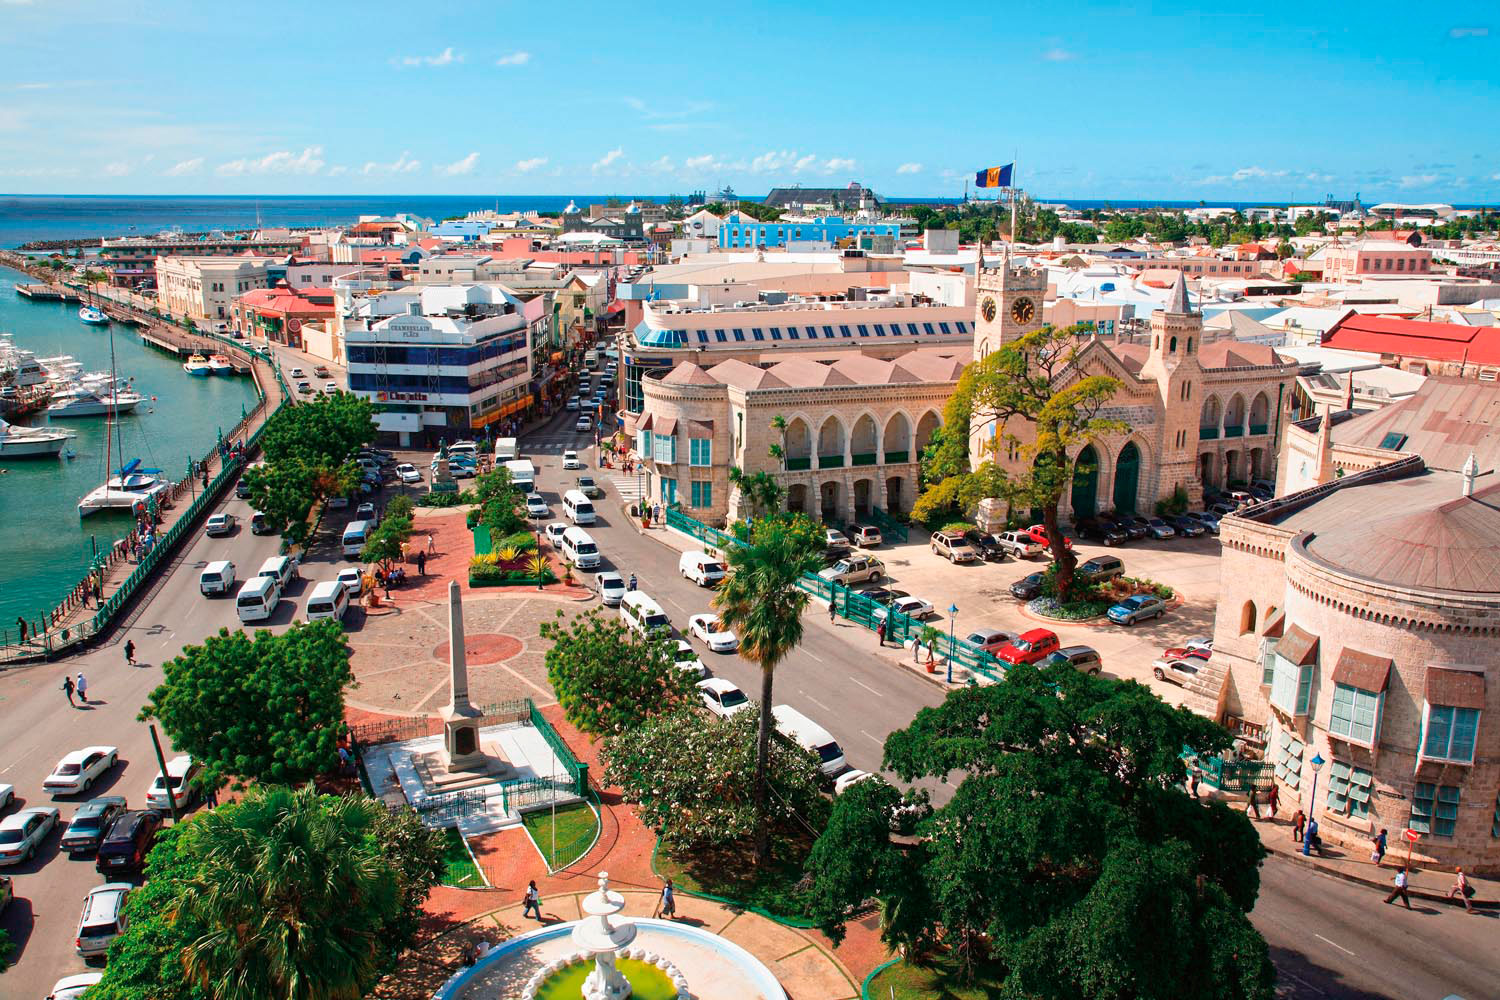 National Heroes Square at the heart of Bridgetown. Photo by Agf Sri/Alamy Stock Photo